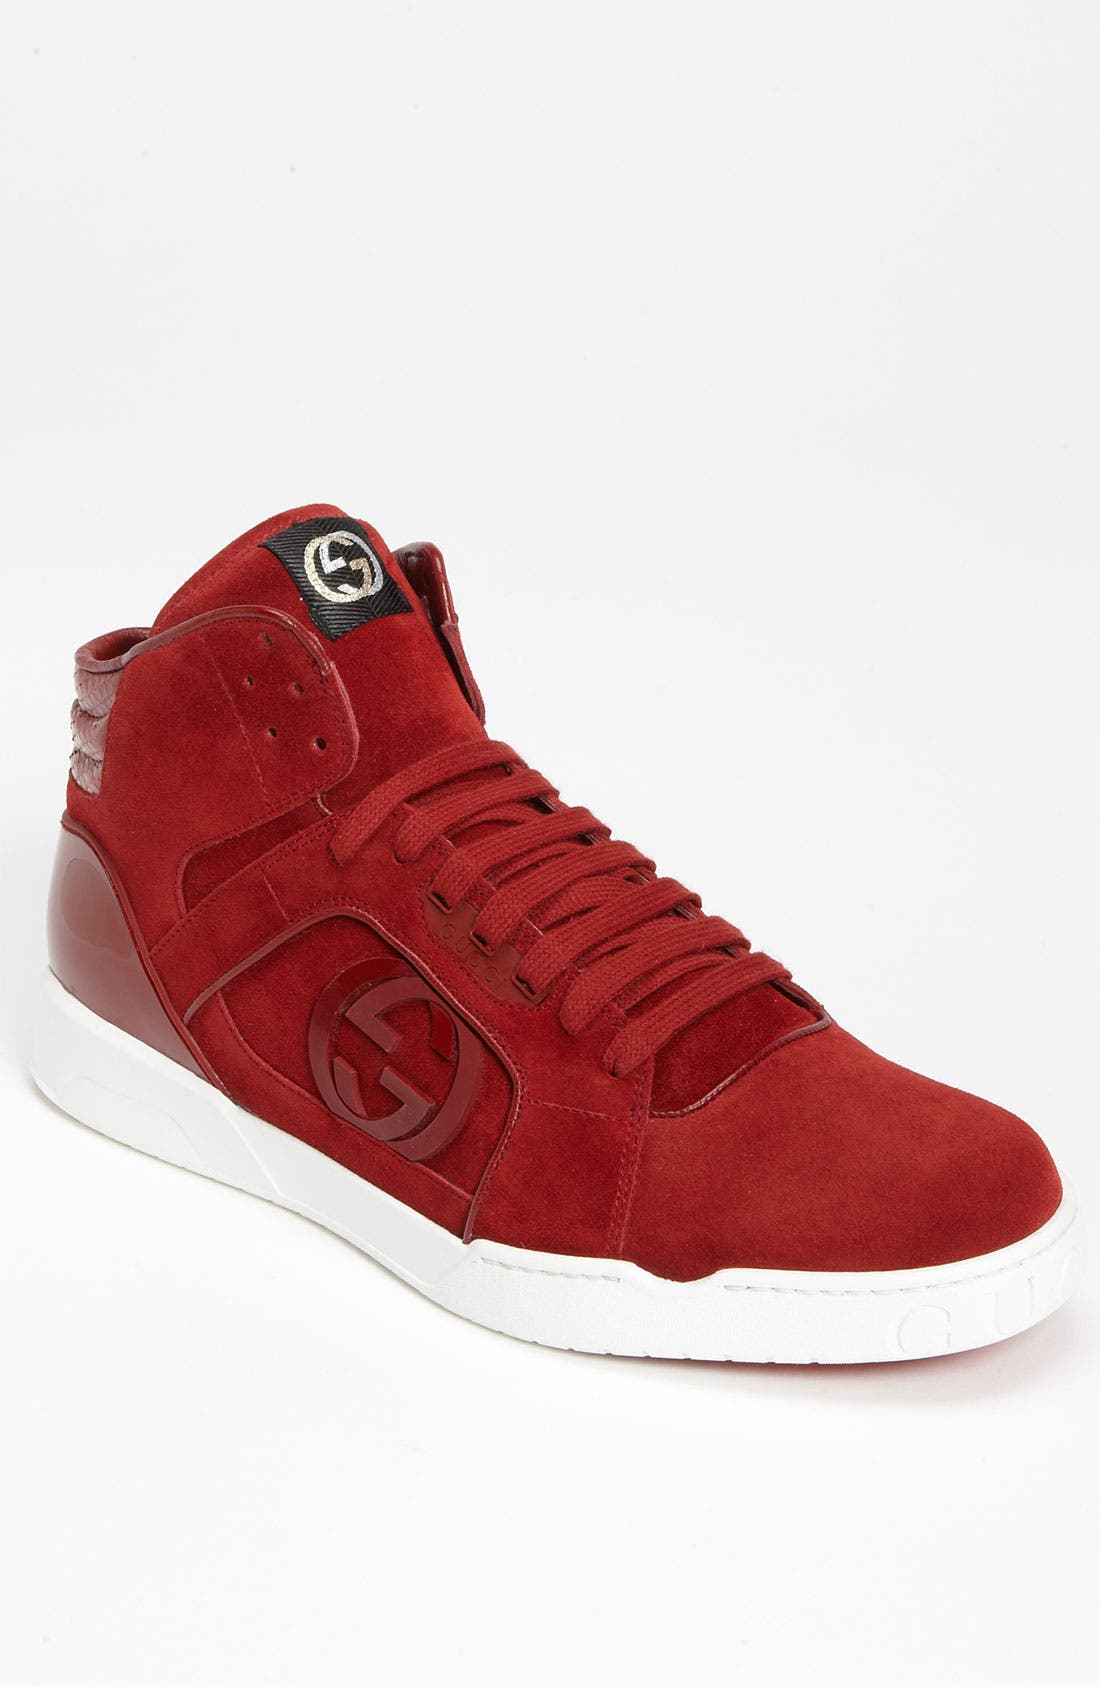 Main Image - Gucci 'Rebound' High Top Sneaker